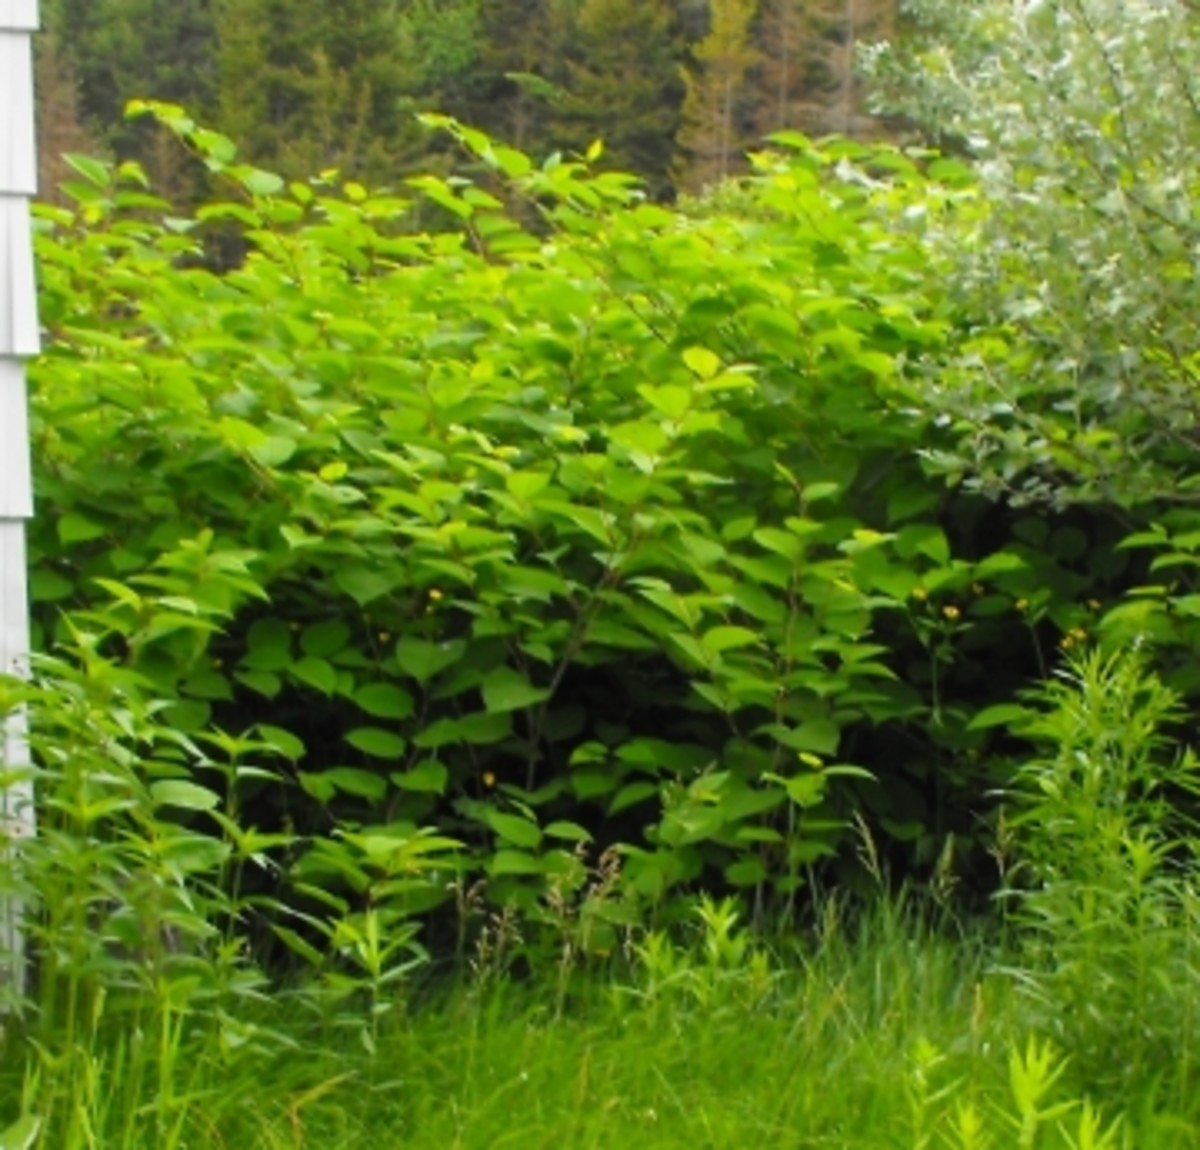 Getting Rid of Invasive Species of Plants: False Bamboo in Ontario (Japanese Knotweed, Chinese Bamboo)